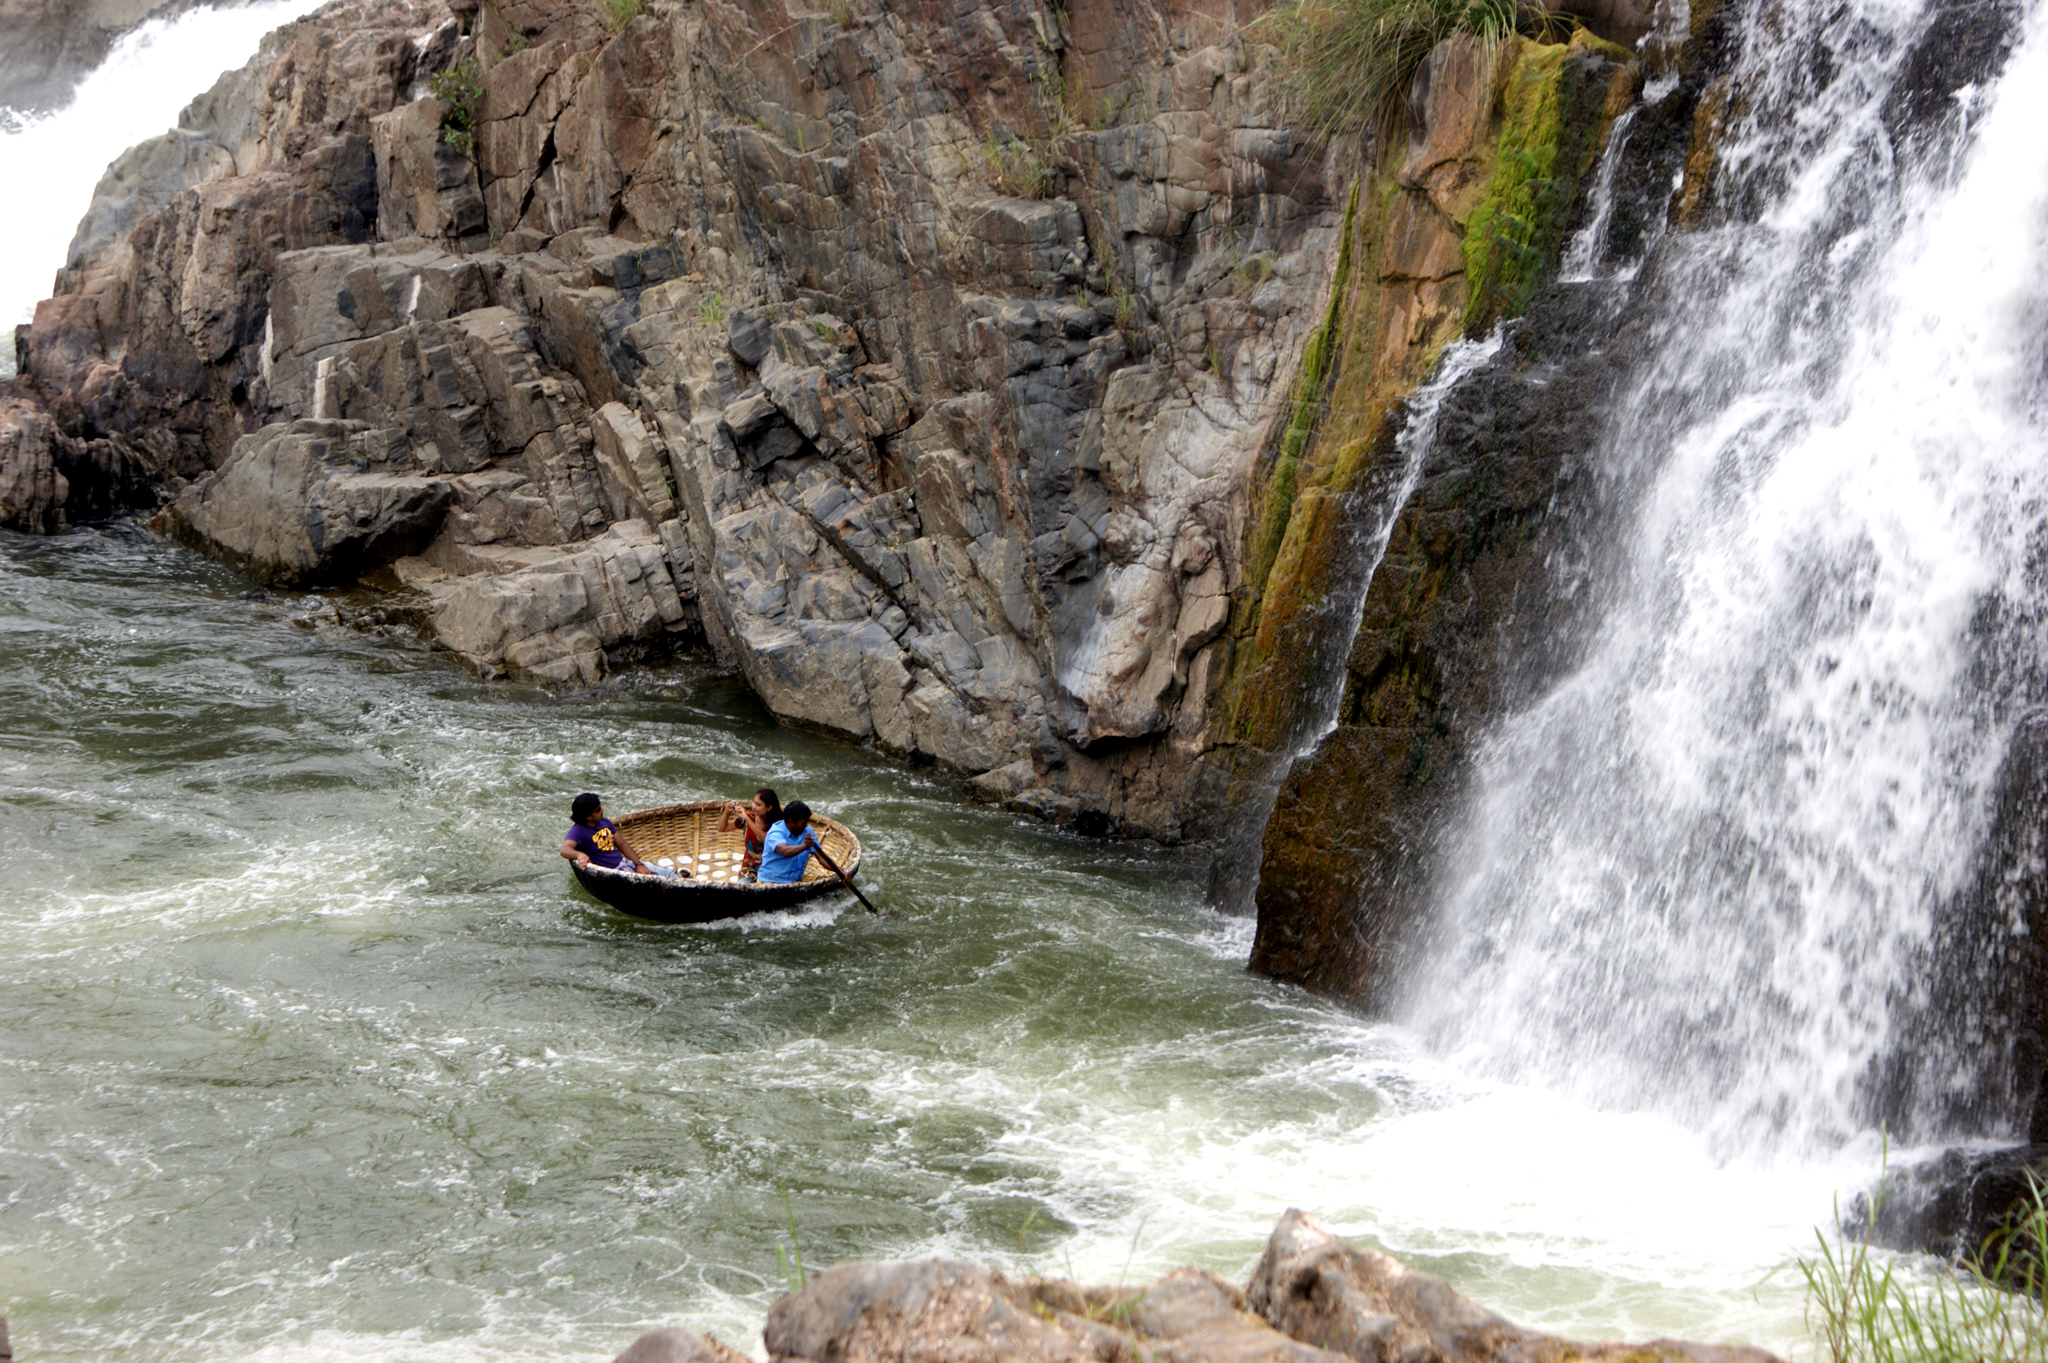 https://upload.wikimedia.org/wikipedia/commons/e/ed/Hogenakkal_Falls_and_Coracle_Ride2.jpg